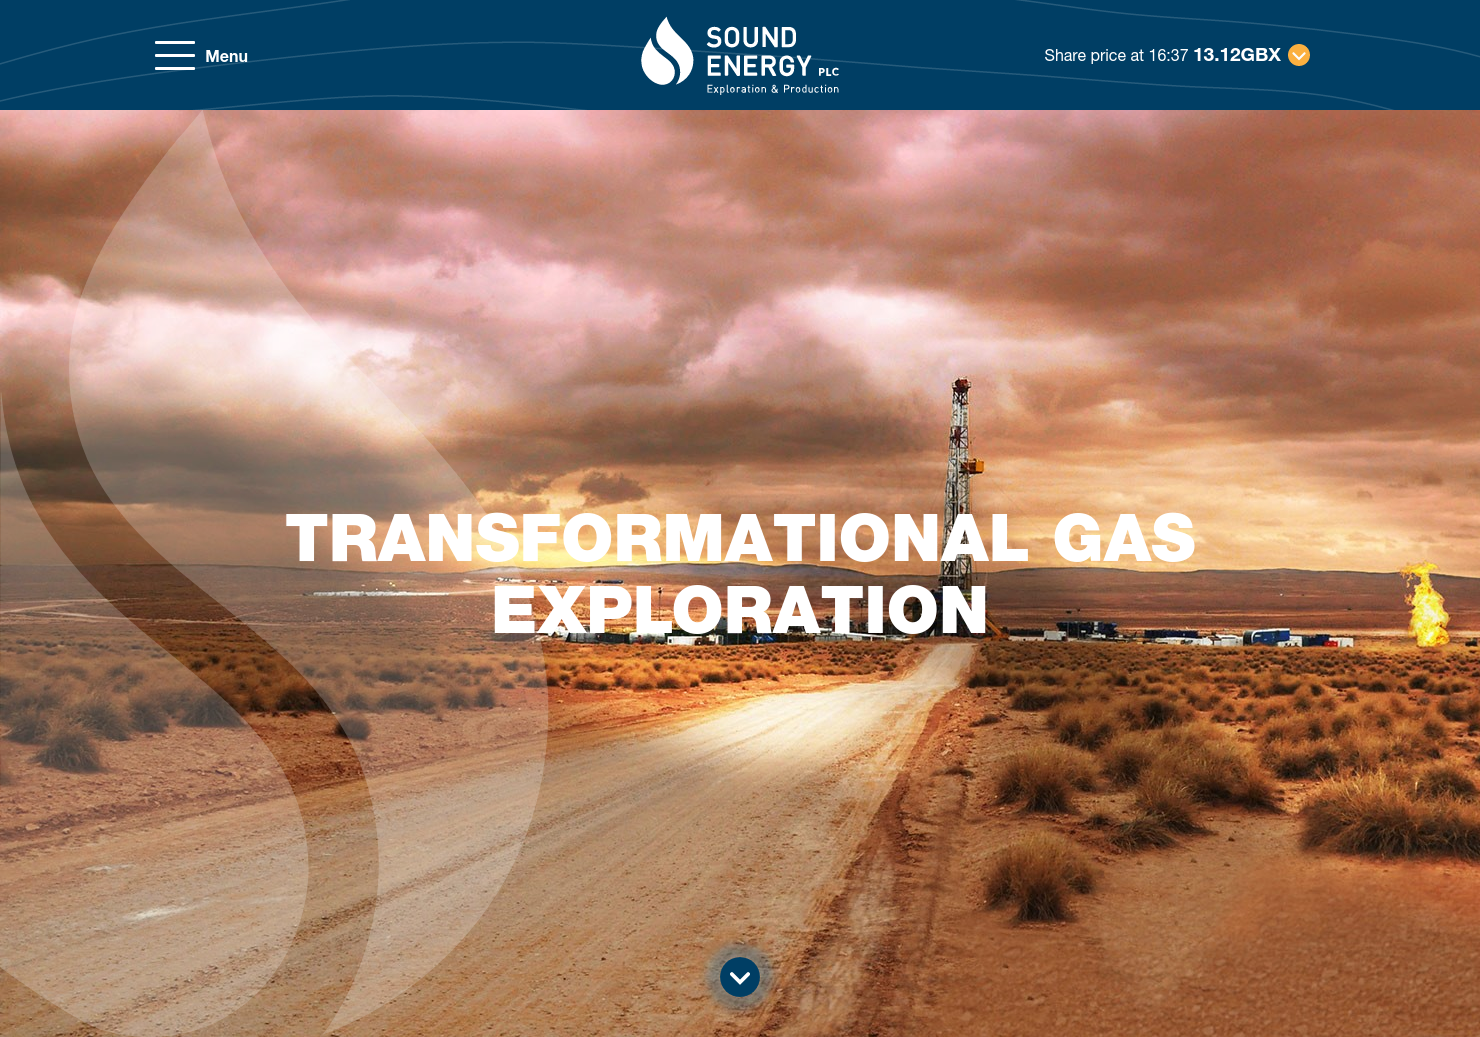 Sound Energy Home Page